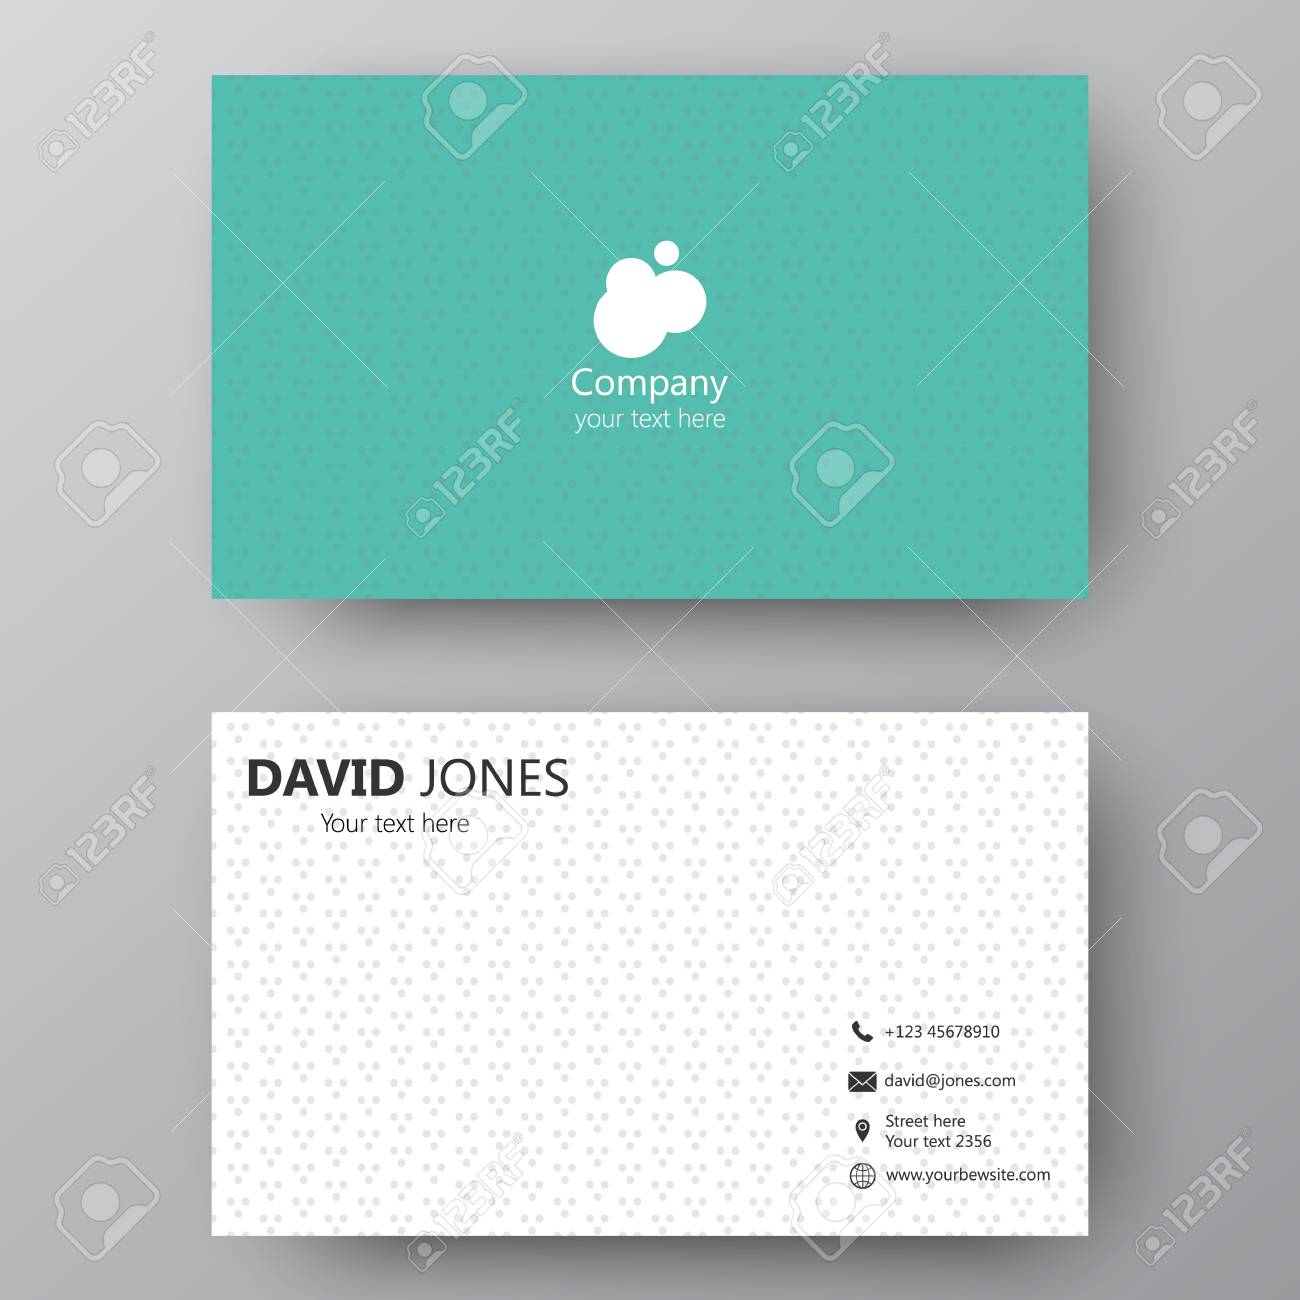 visiting card for business images - free business cards, Powerpoint templates